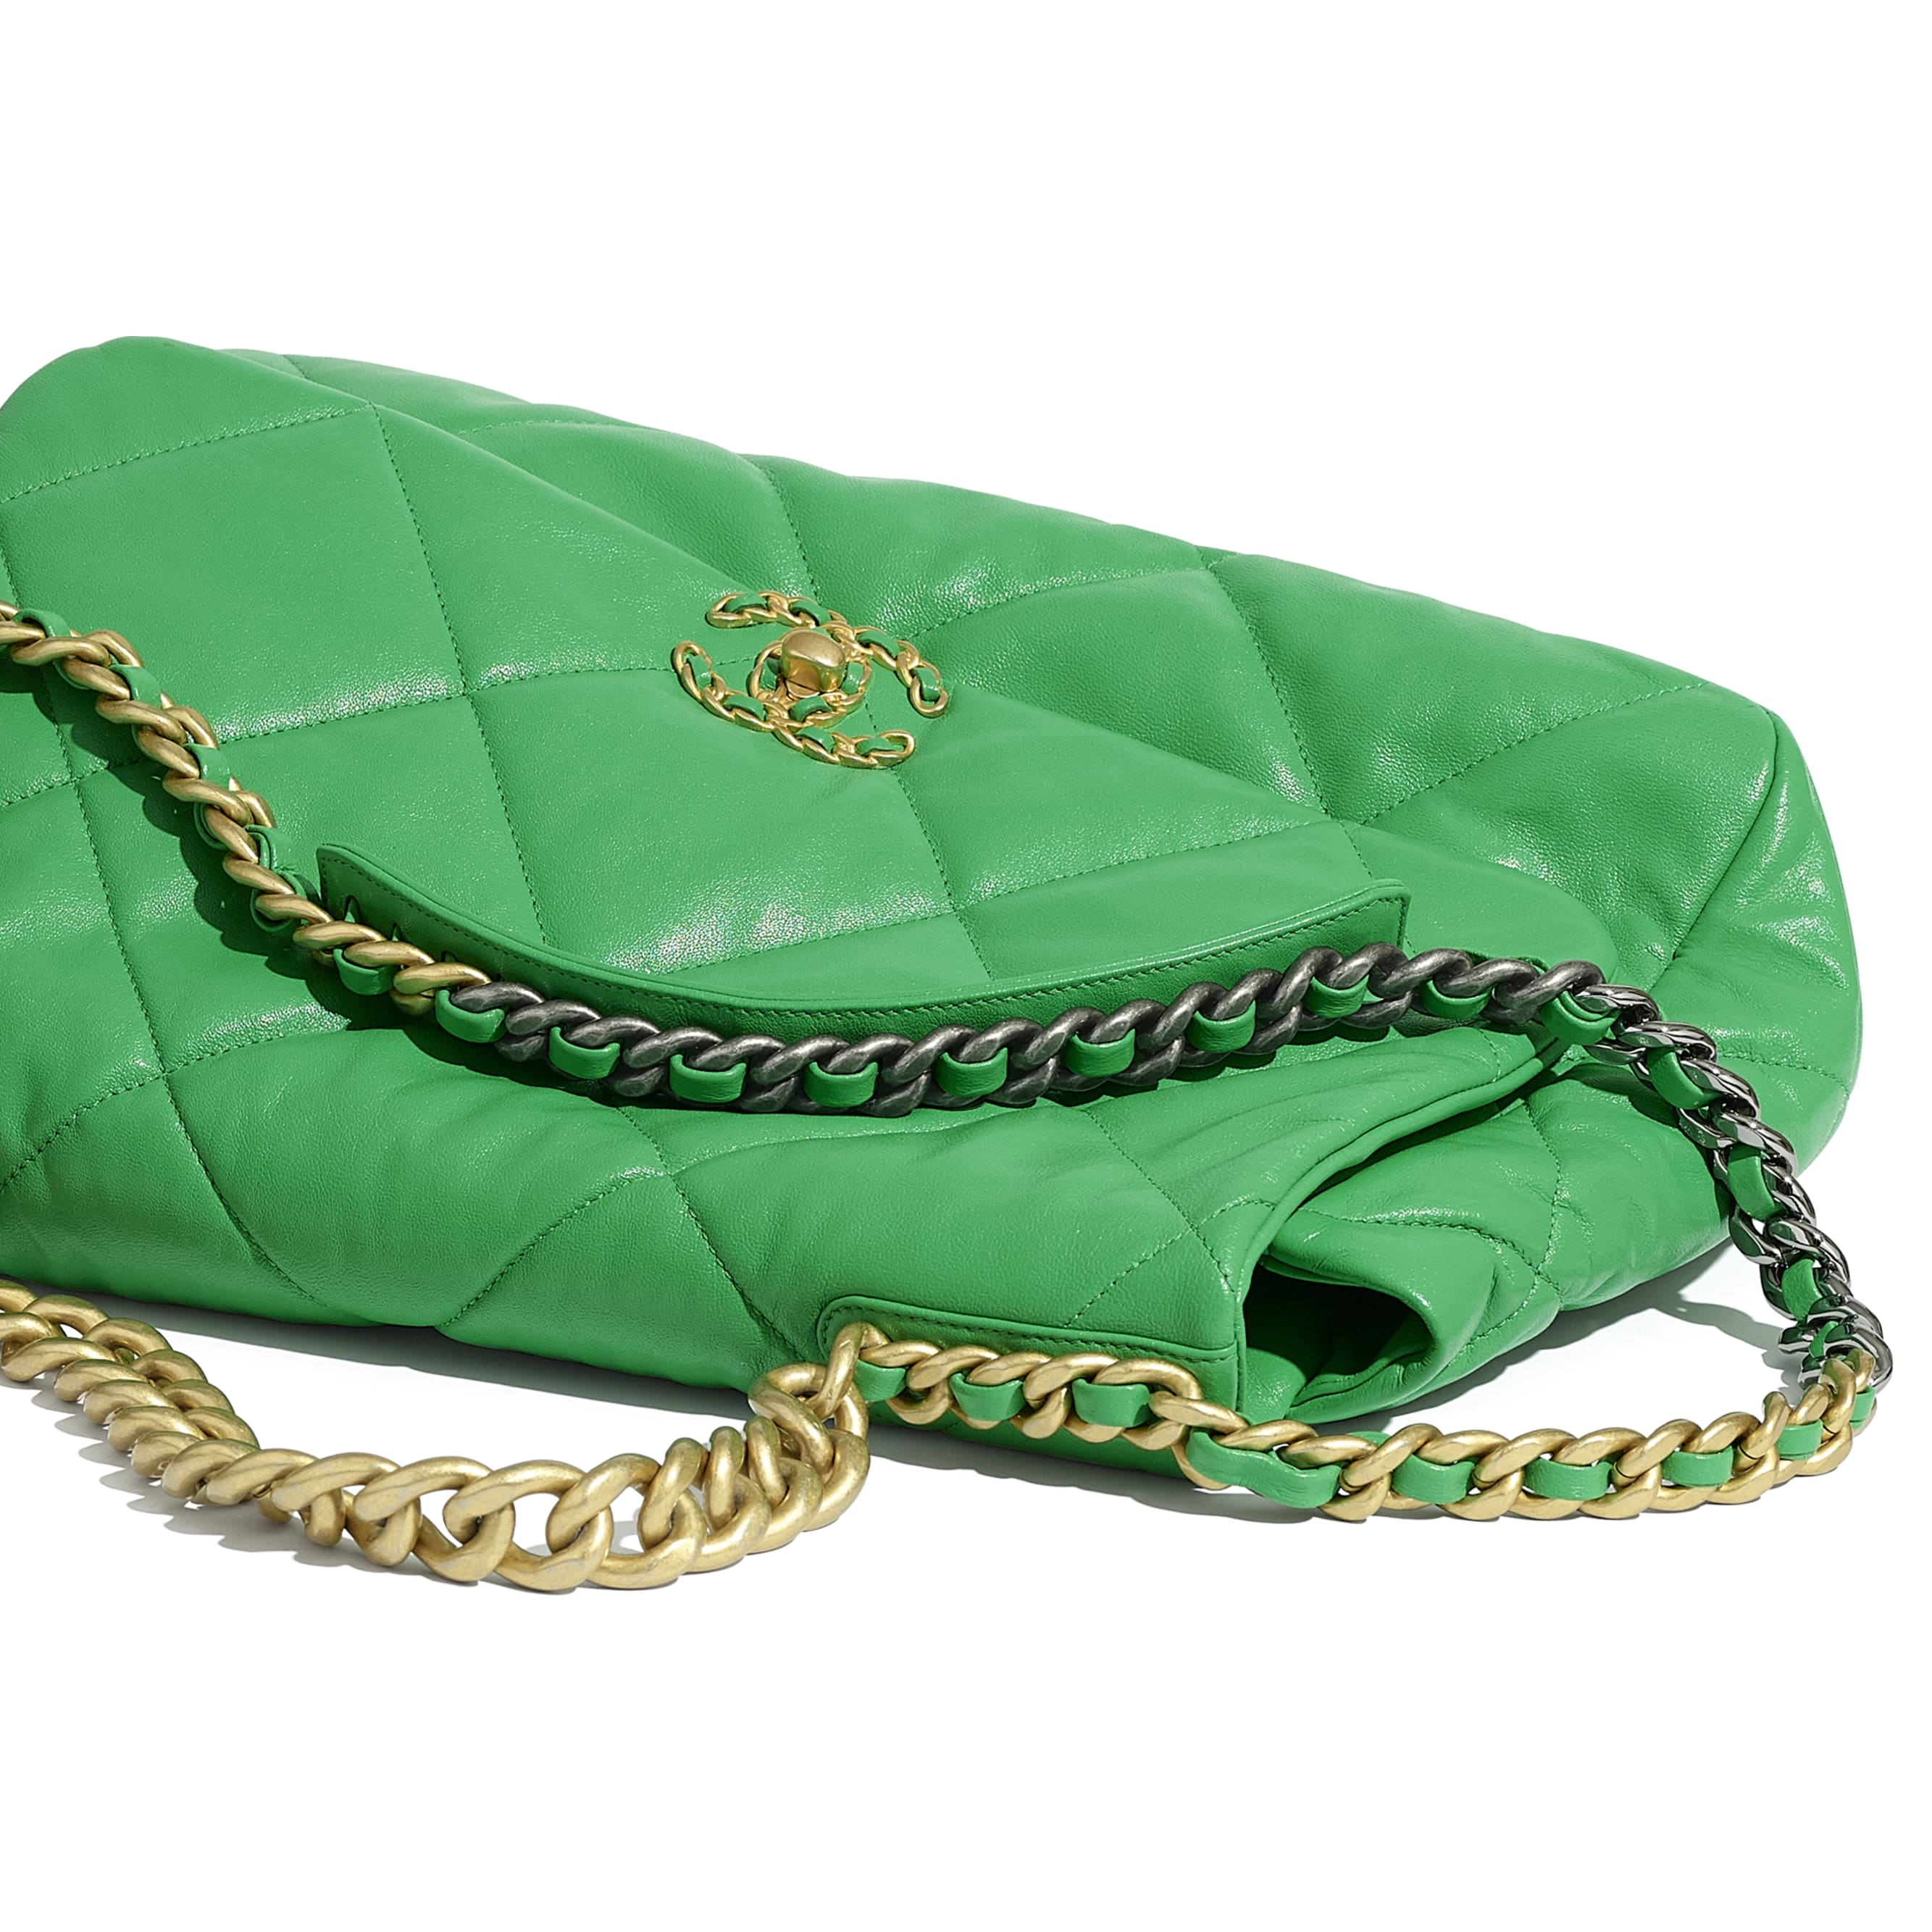 CHANEL 19 Maxi Flap Bag - Green - Lambskin, Gold-Tone, Silver-Tone & Ruthenium-Finish Metal - CHANEL - Extra view - see standard sized version